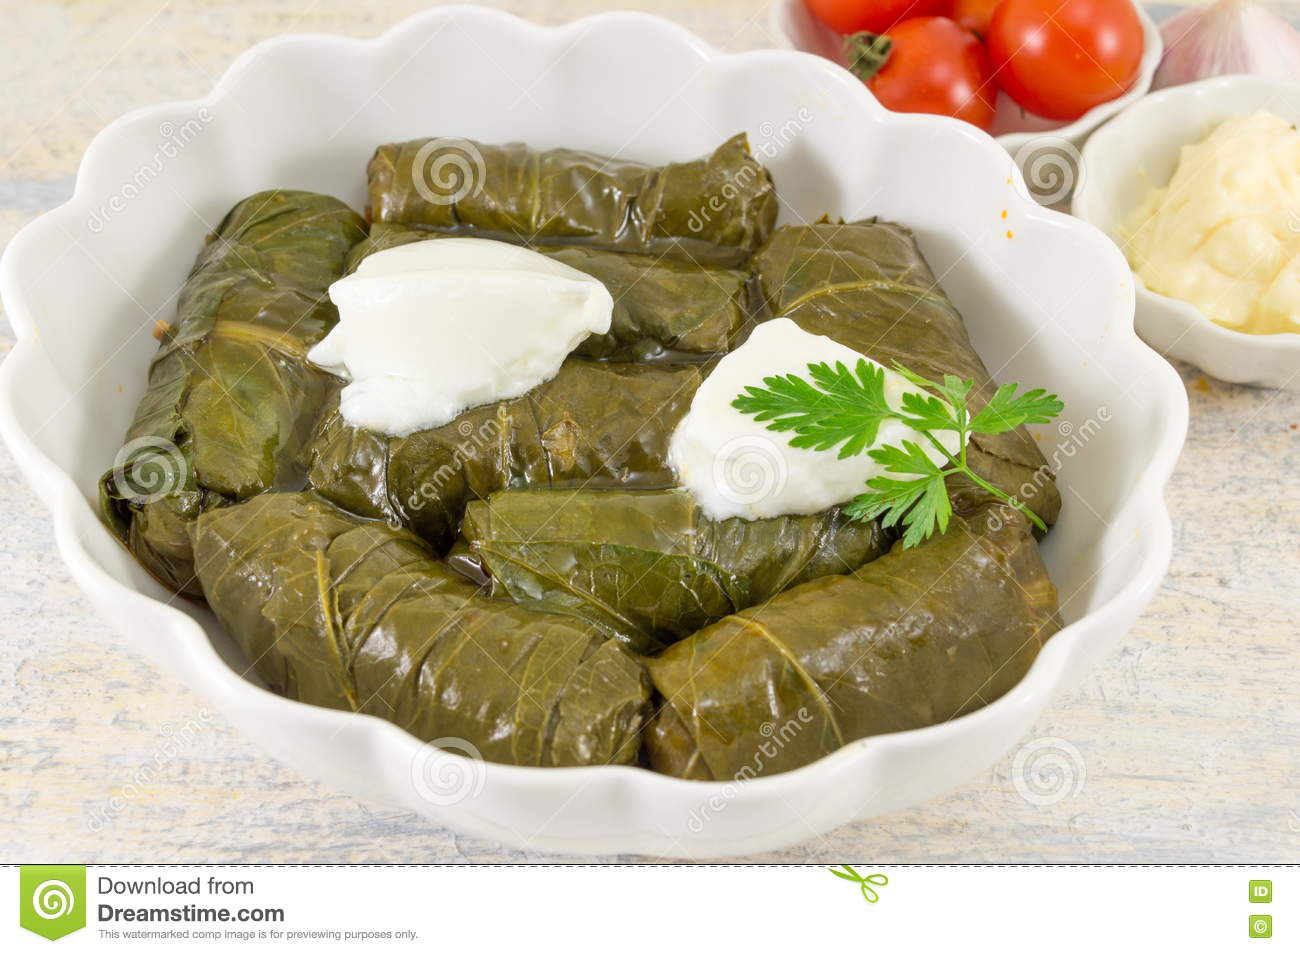 Sarma rolls in a plate covered with spices